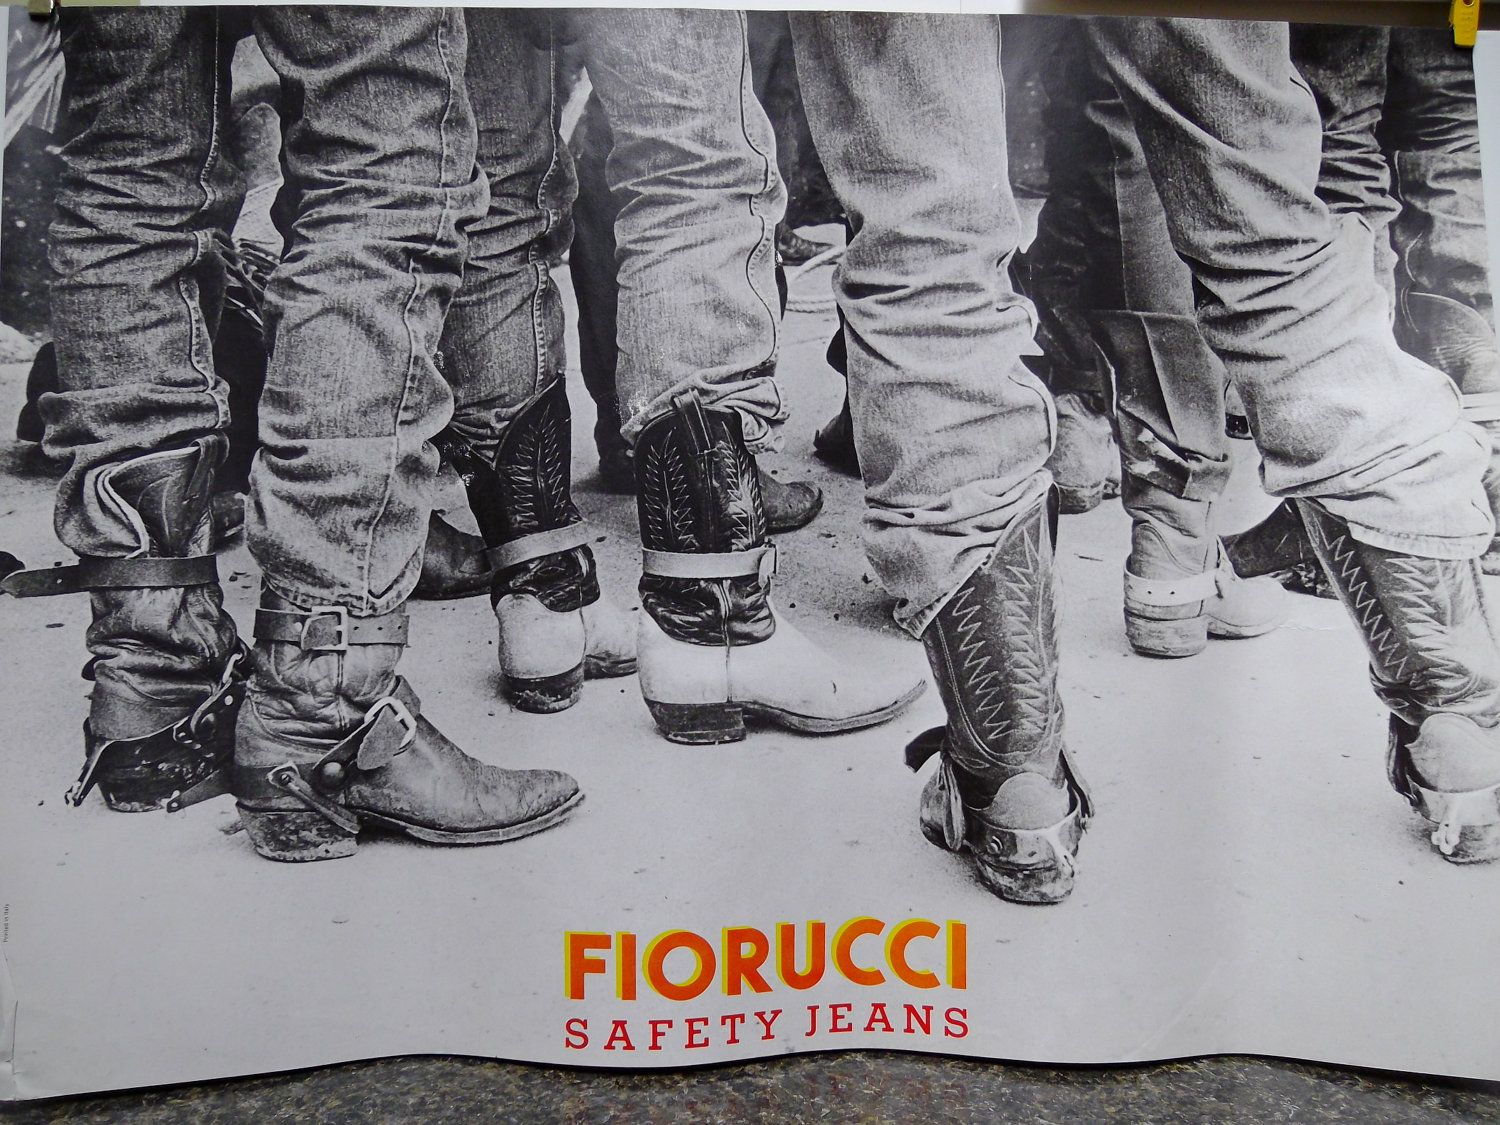 Poster design jeans - Vintage Poster Art Cowboys Boots And Safety Jeans For Fiorucci 70 00